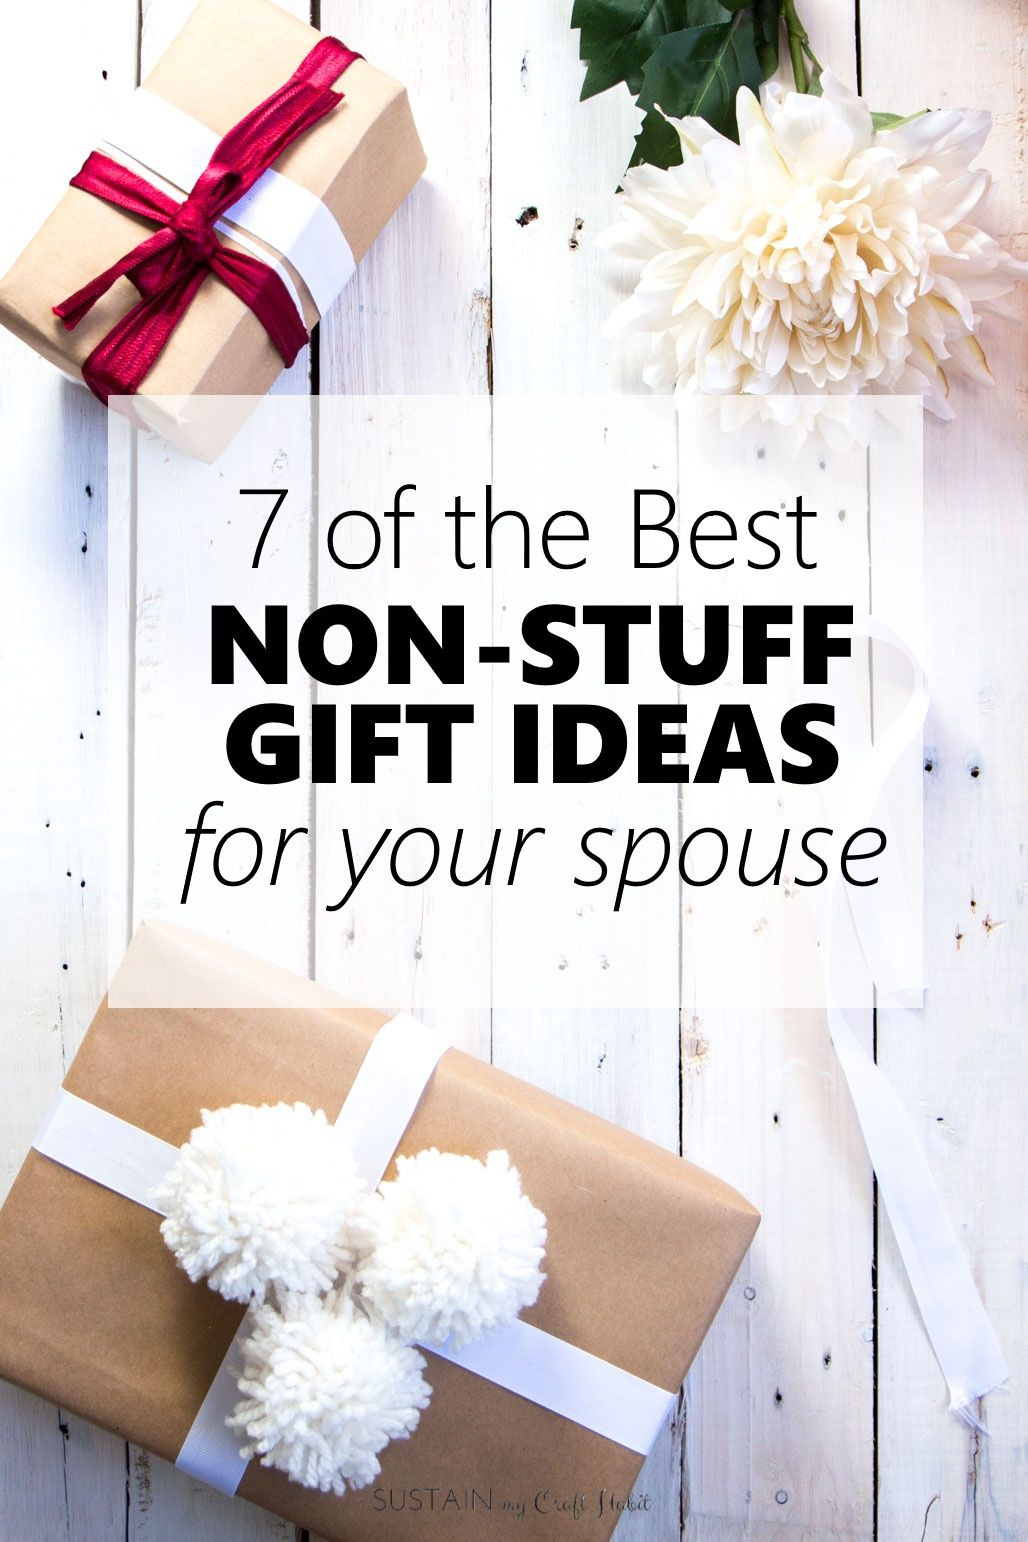 7 of the Best Non-Stuff Gift Ideas for your Spouse ...